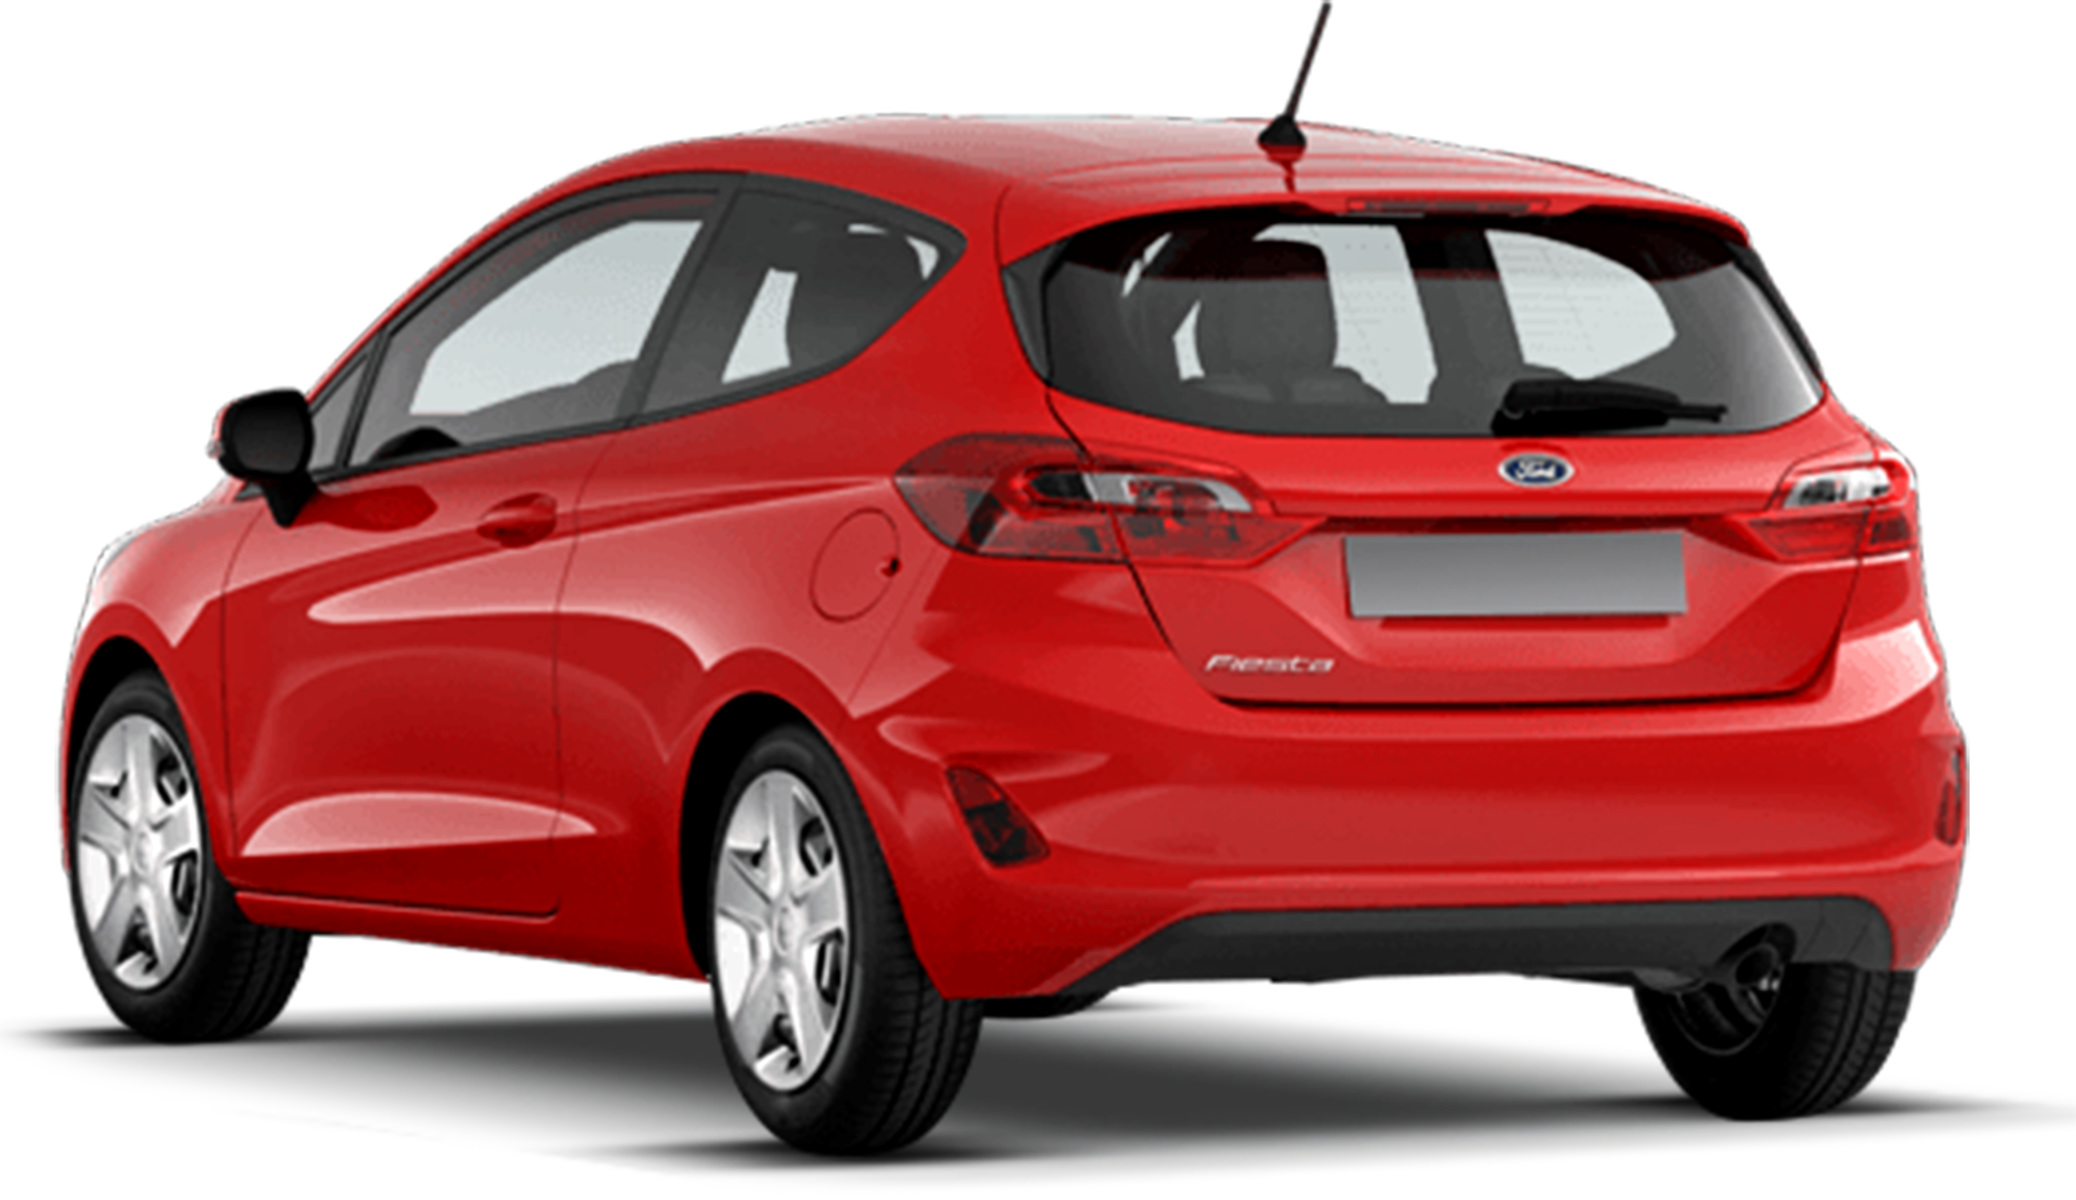 ford fiesta nuova with Ford Fiesta on Ford Fiesta further Ford Fiesta 2017 as well 2018 Ford Fiesta together with 128033 likewise 2018 Ford Ecosport Tries To Look Cool With St Line Package In Frankfurt 120384.